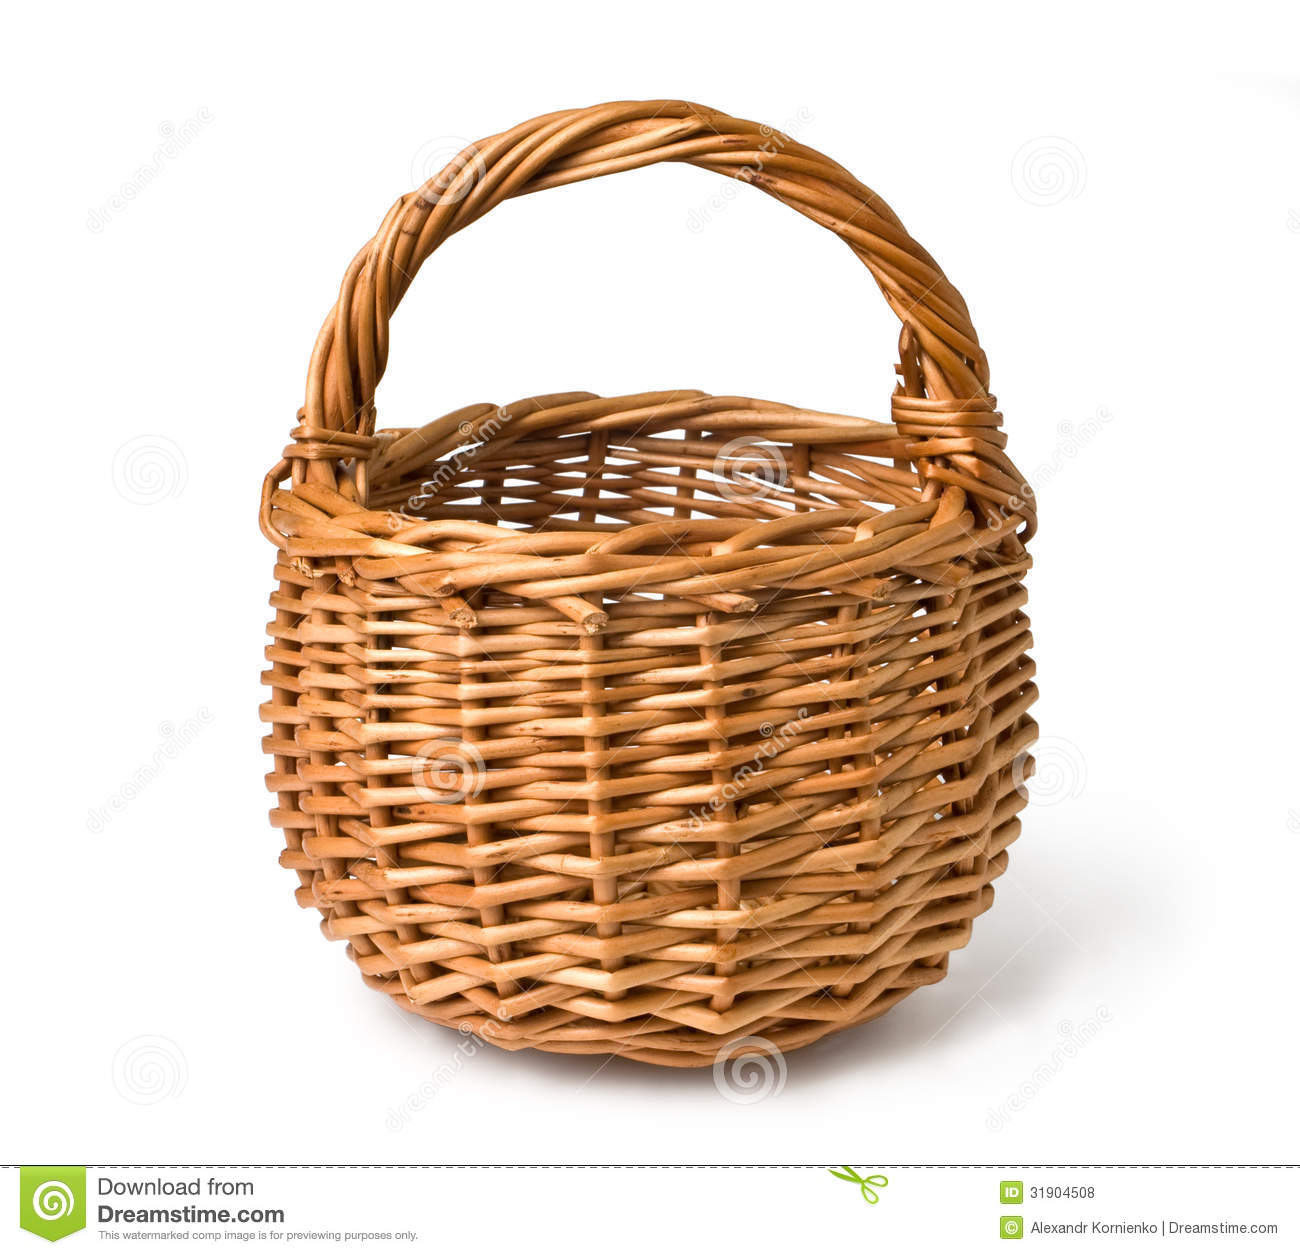 Empty wicker basket isolated on white with clipping path.